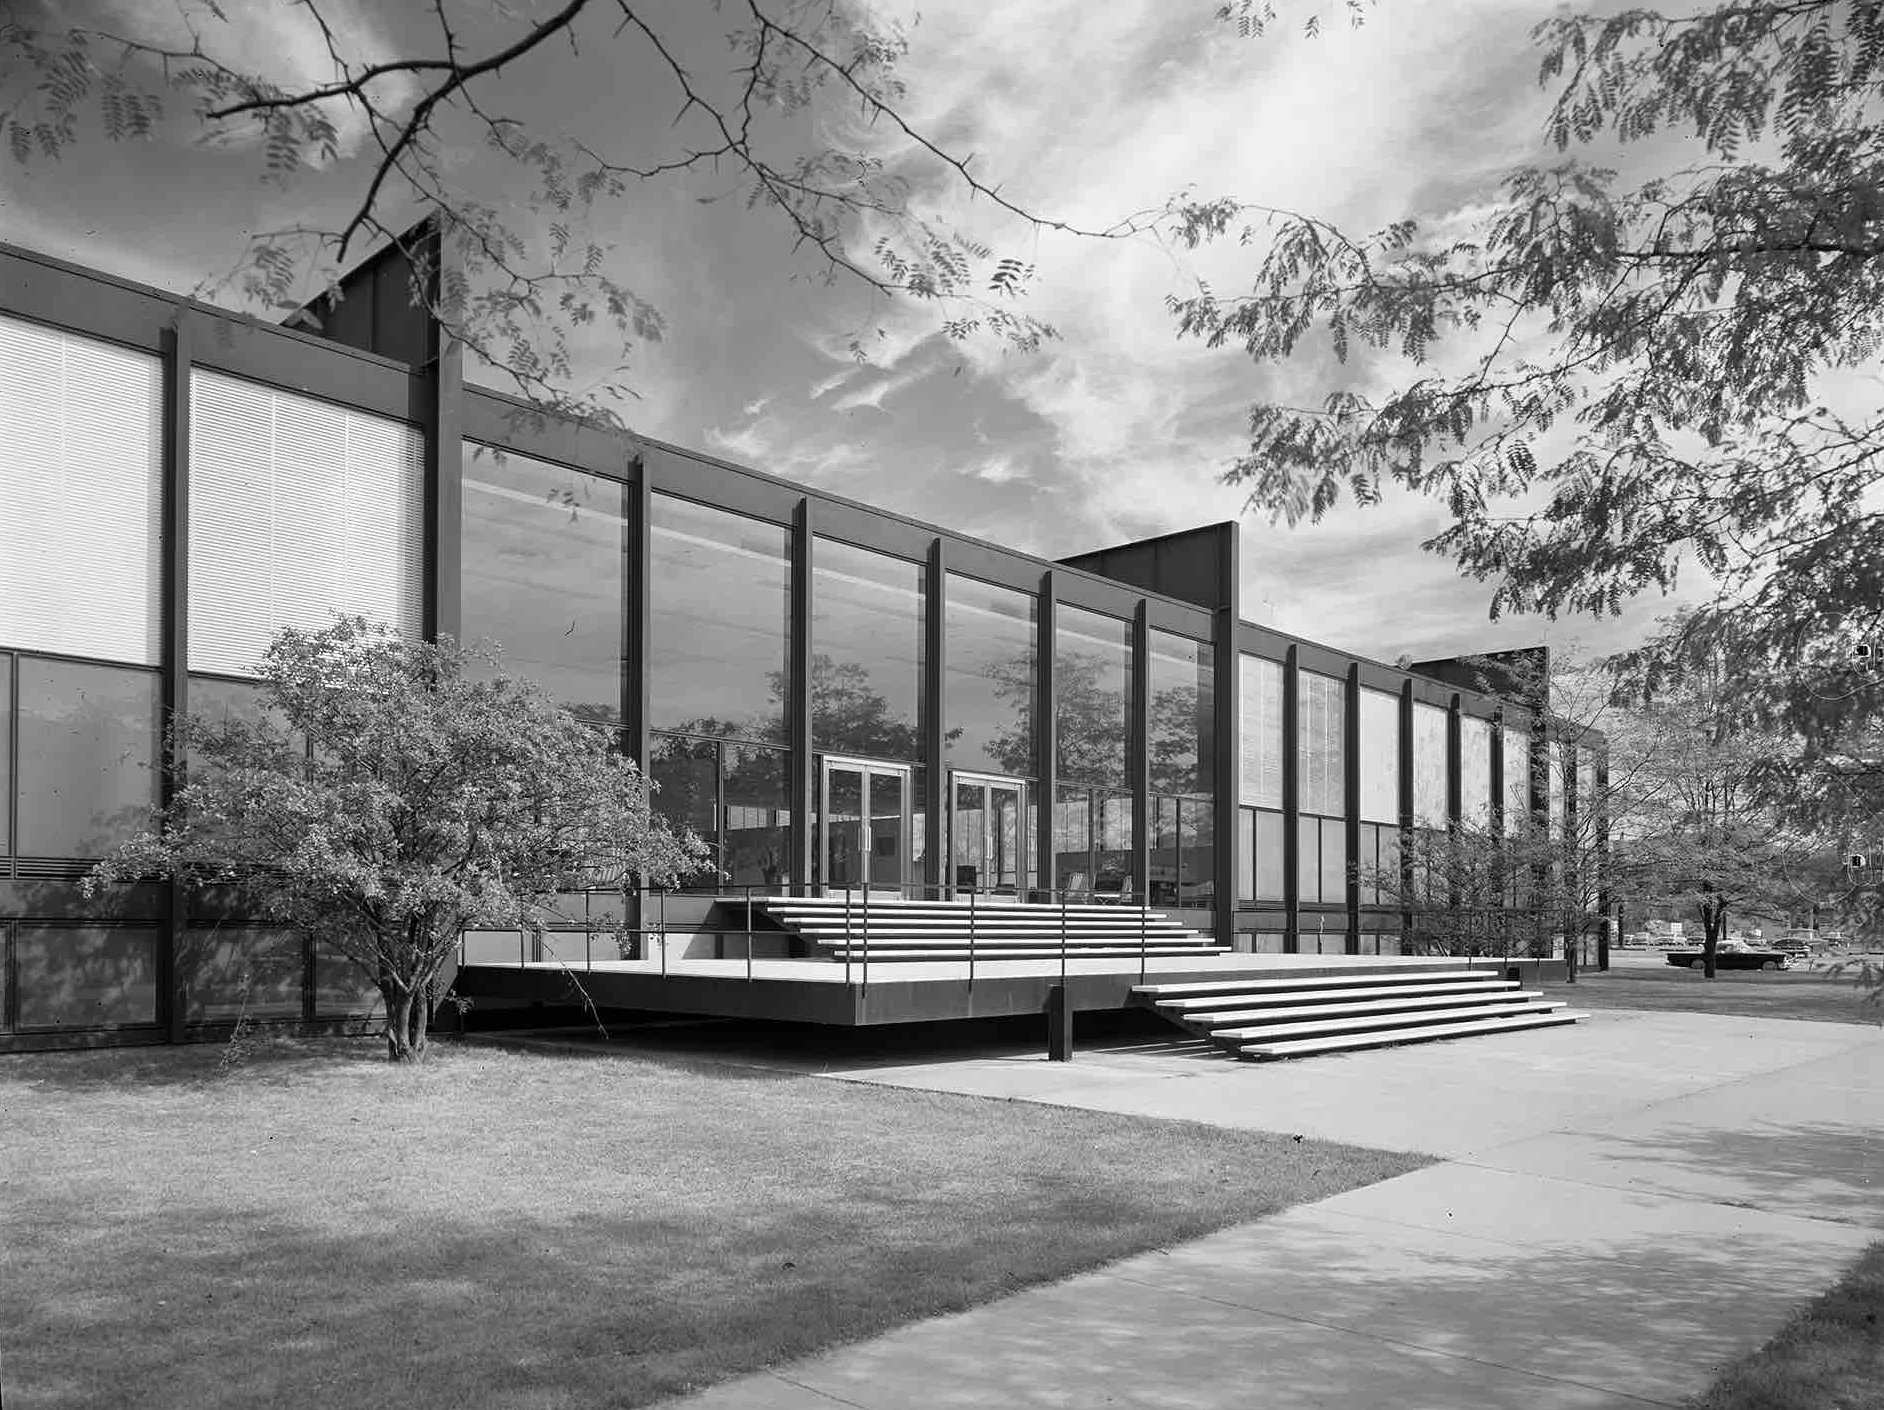 Ludwig Mies van der Rohe, Illinois Institute of Technology (Chicago, IL) c. 1956